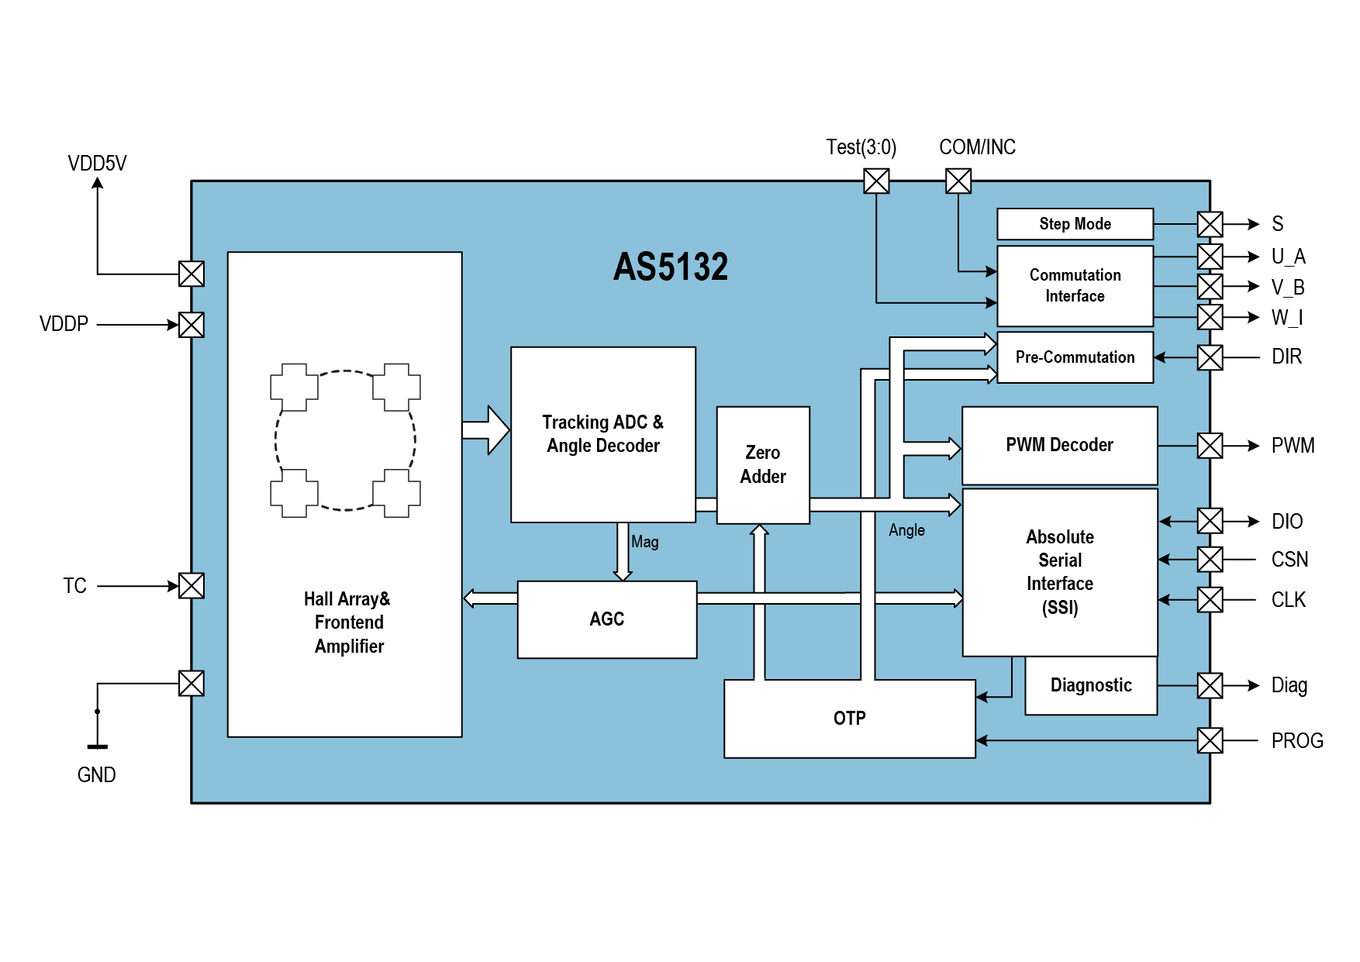 AS5132 Block Diagram